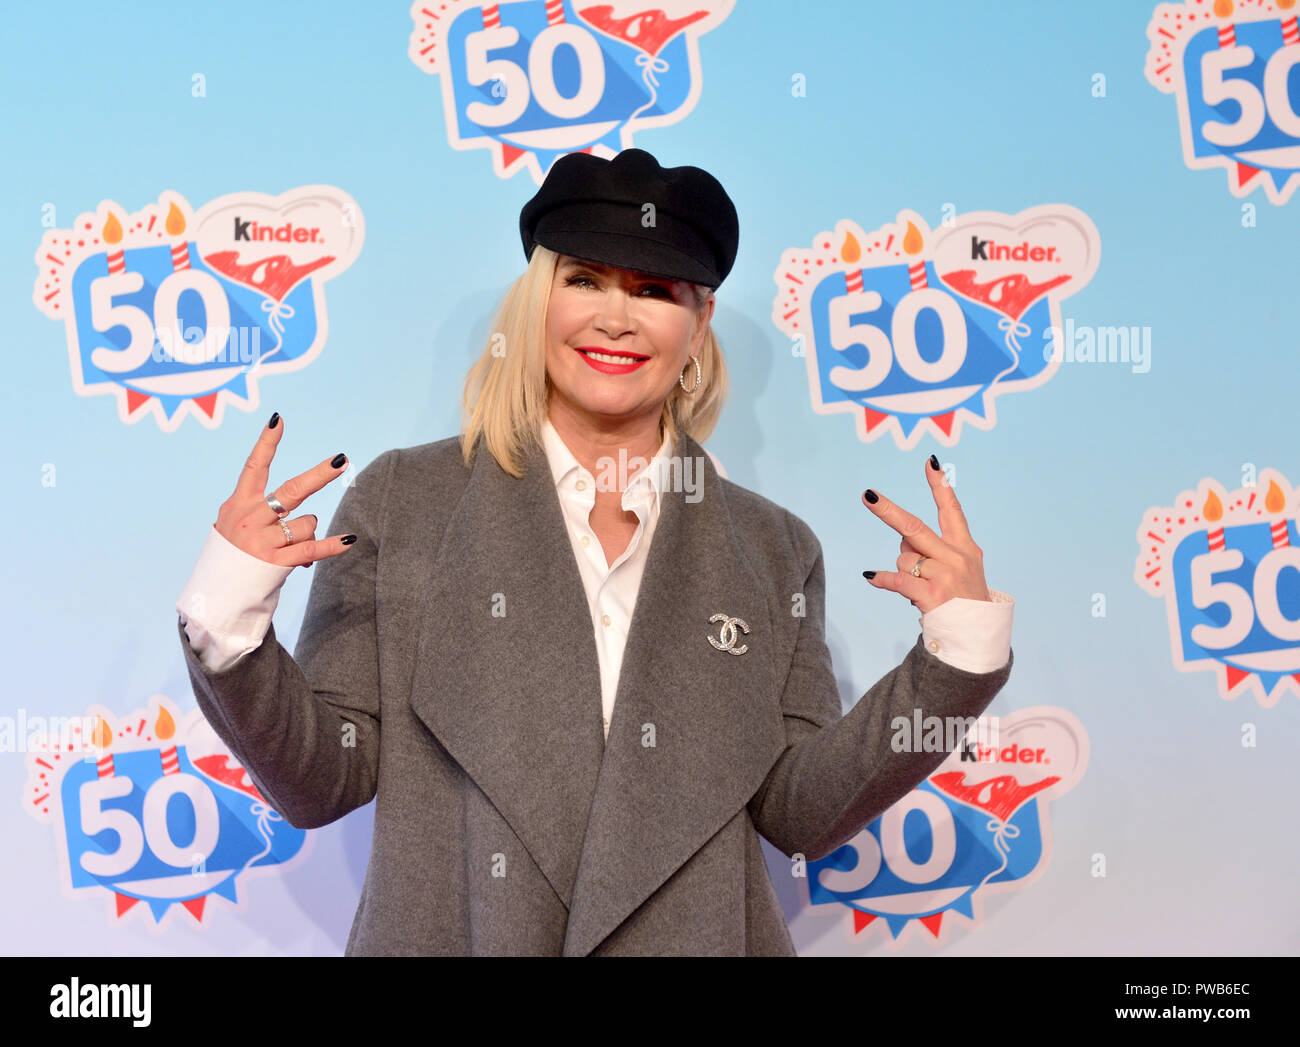 Soltau, Lower Saxony. 14th Oct, 2018. 14 October 2018, Germany, Soltau: Model and designer Claudia Effenberg comes to an event of the company Kinder Schokolade in the Heide-Park. The Kinder brand celebrates its 50th anniversary with a family celebration in the park. Credit: Hauke-Christian Dittrich/dpa/Alamy Live News - Stock Image